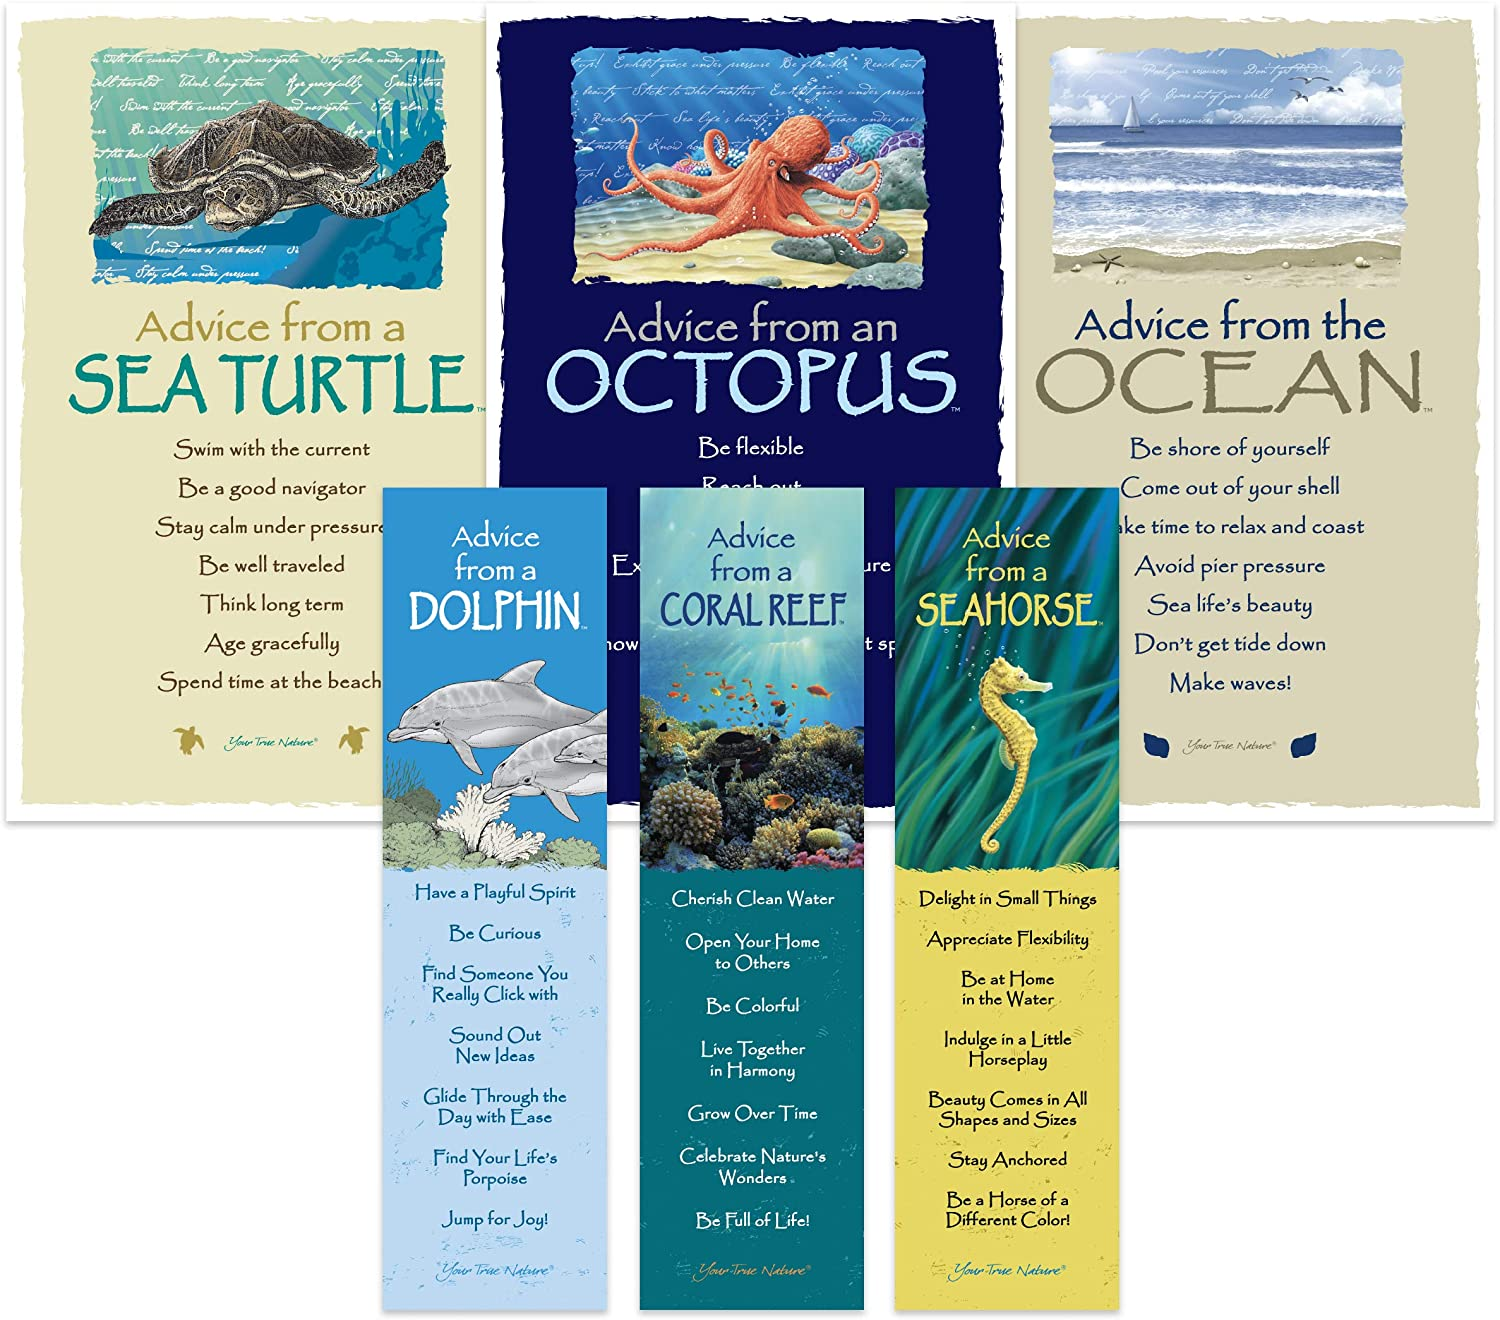 Advice from Nature Bookmark & Art Card Coastal Set- 3 Bookmarks: Coral Reef, Sea Horse, Dolphin - 3 Art Cards: Sea Turtle, Ocean, Octopus by Your True Nature